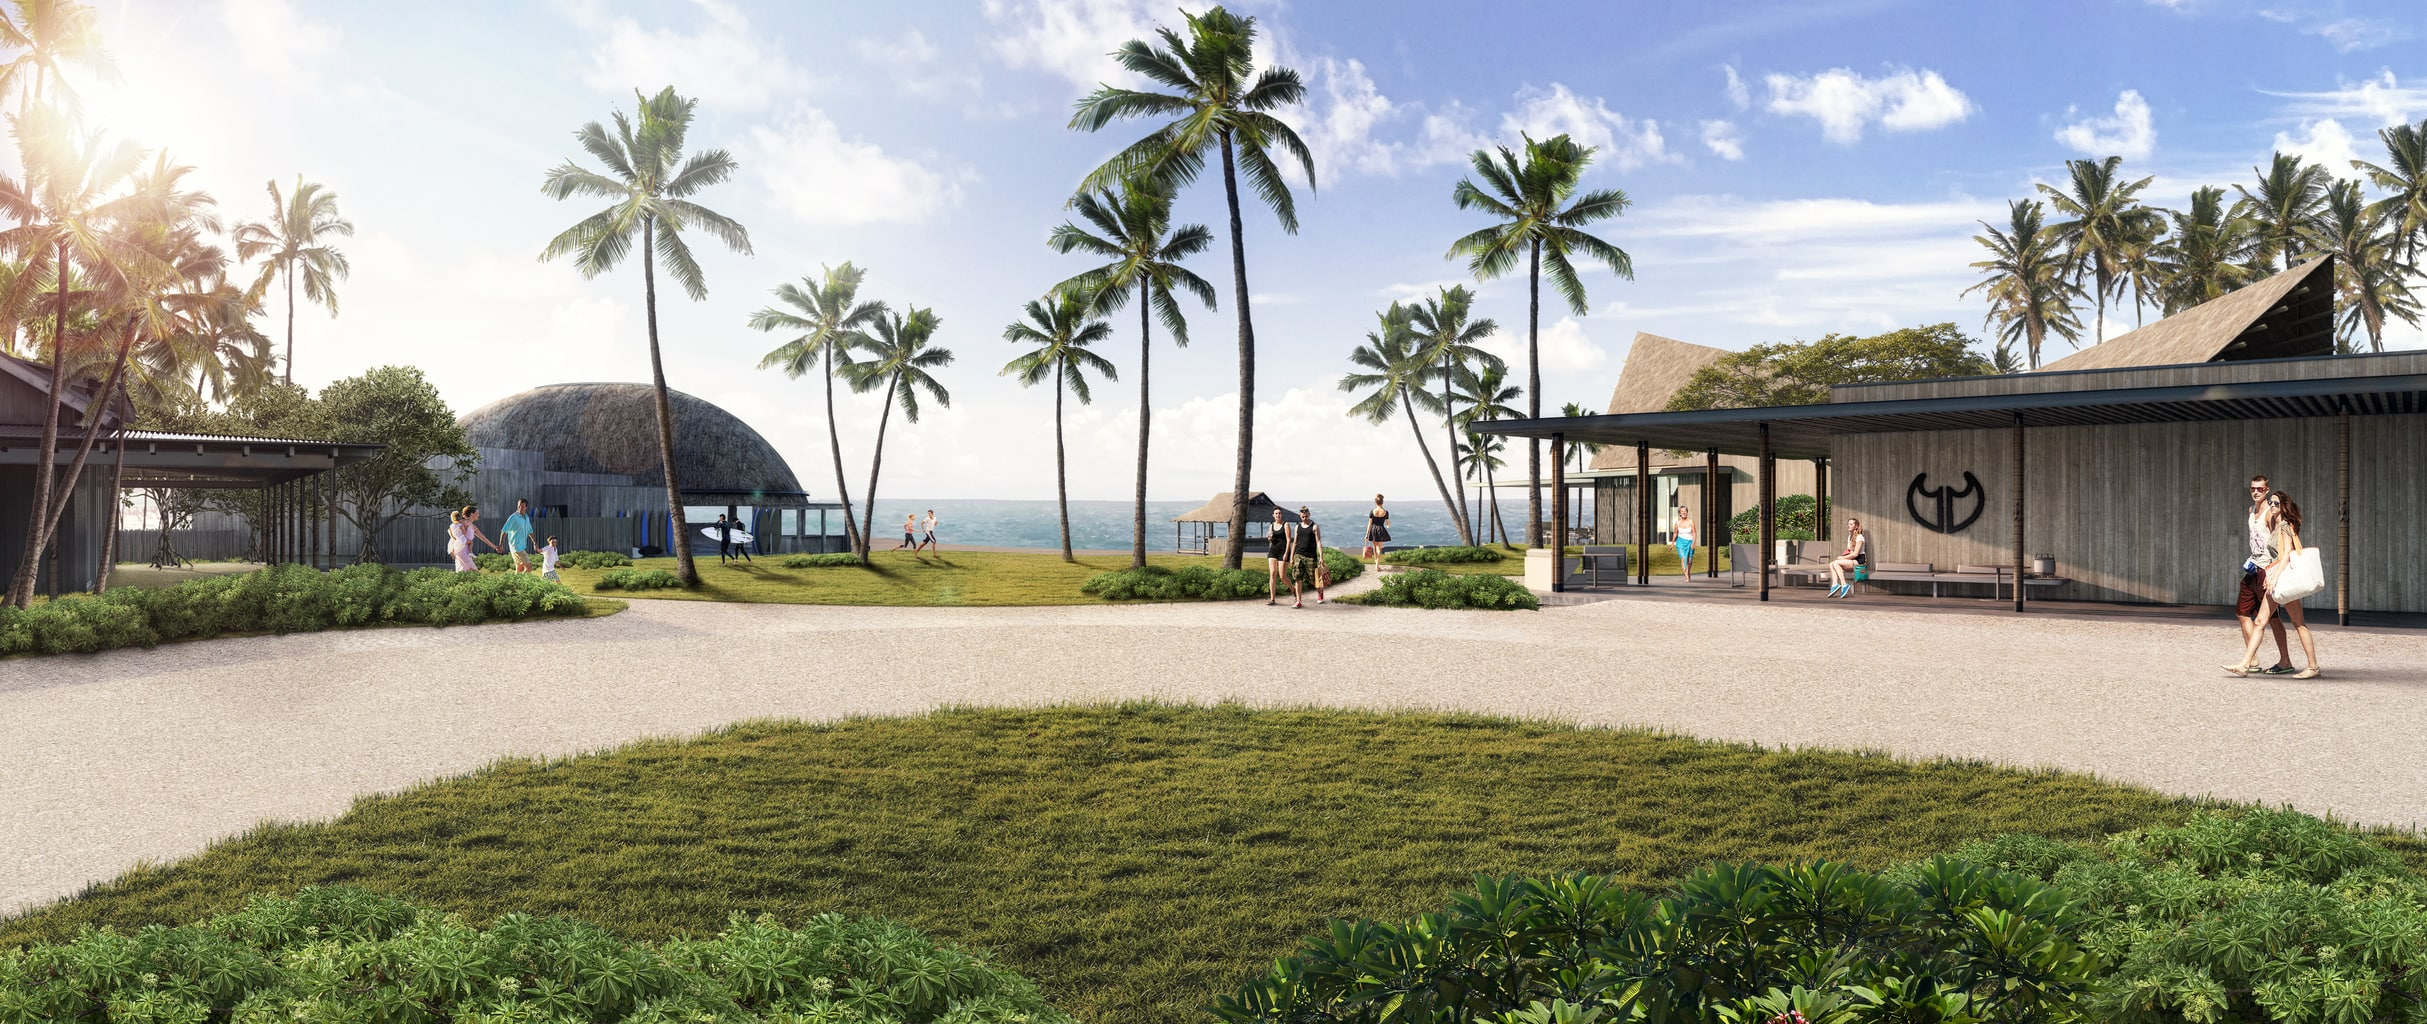 Resort Exterior 3D Rendering